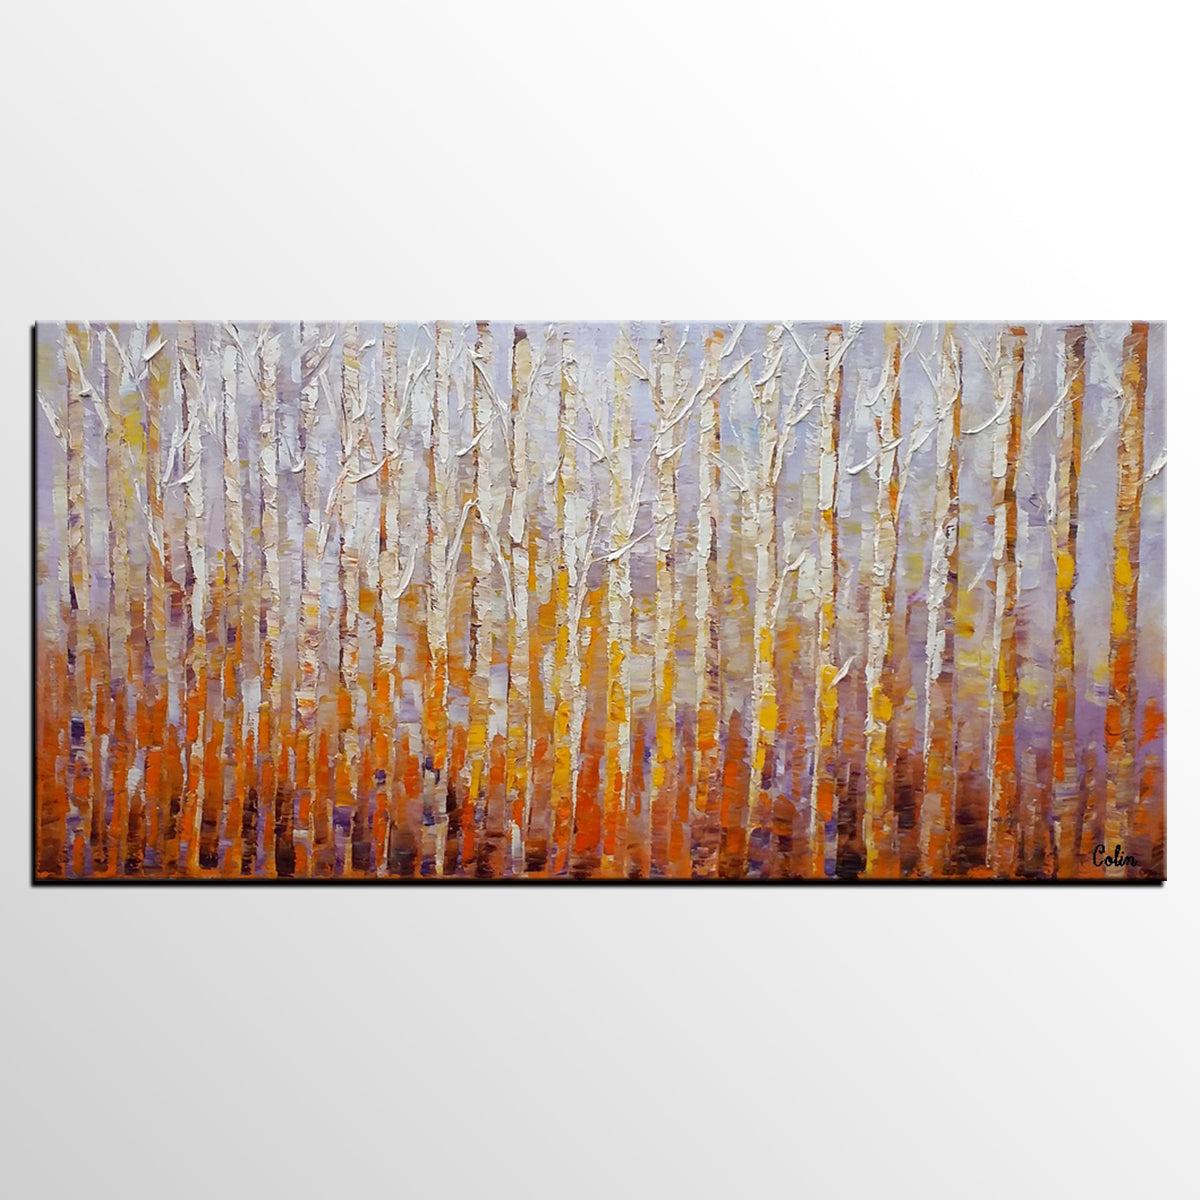 Large Wall Art, Landscape Painting, Oil Painting, Abstract Painting, Large Art, Canvas Art, Living Room Wall Art, Canvas Painting